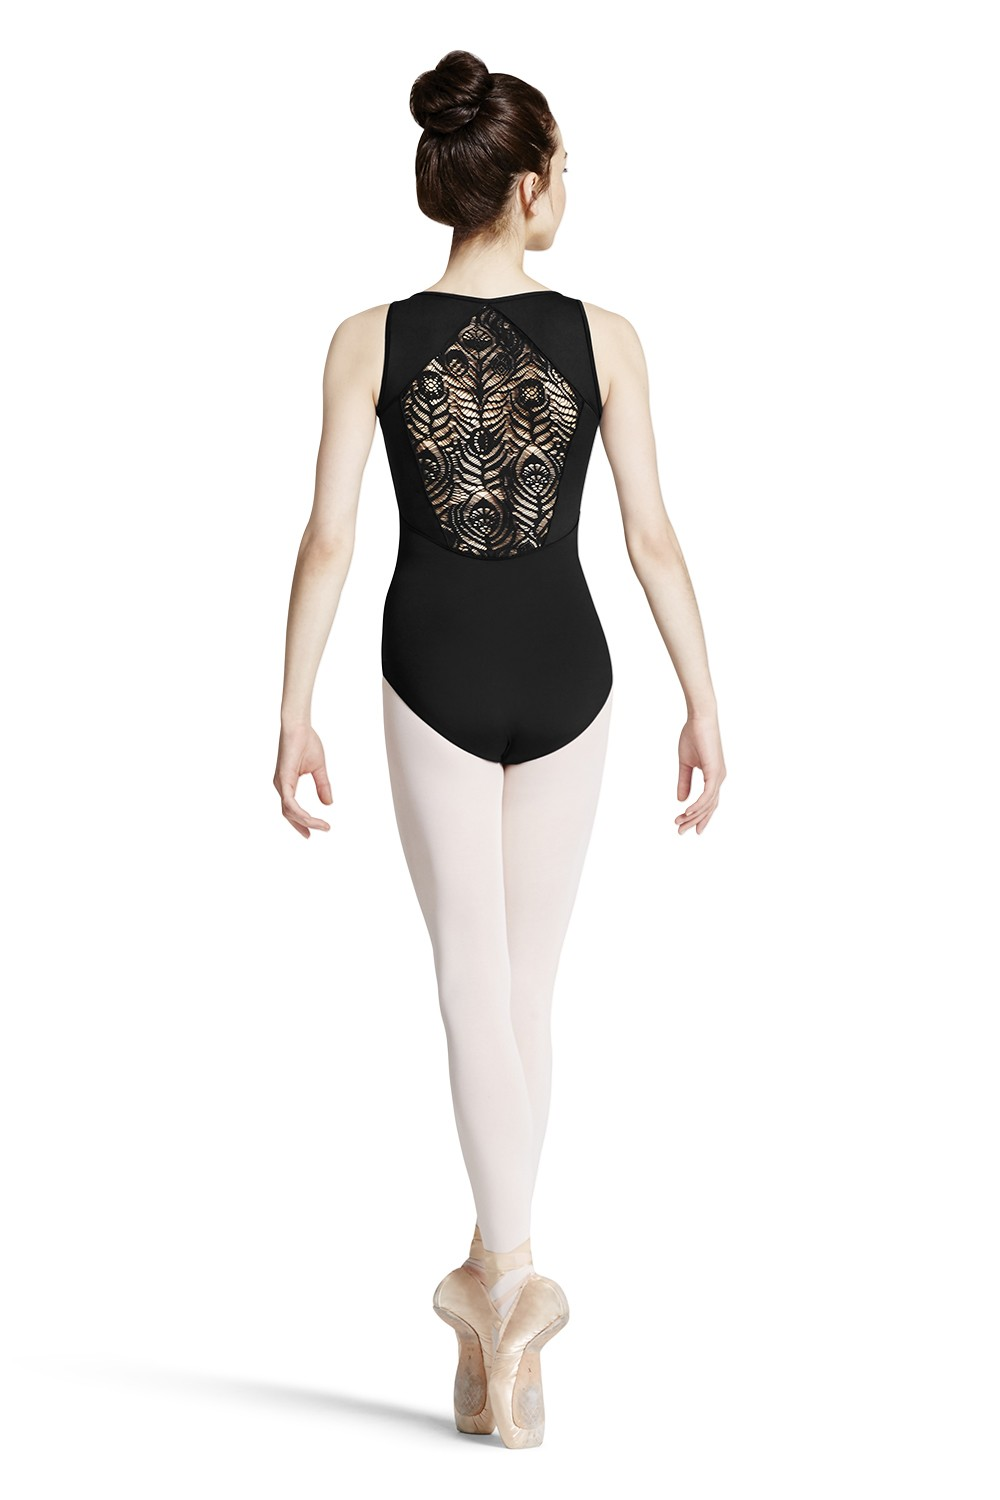 Peacock Plume Back Panel Tank Leotard Women's Dance Leotards